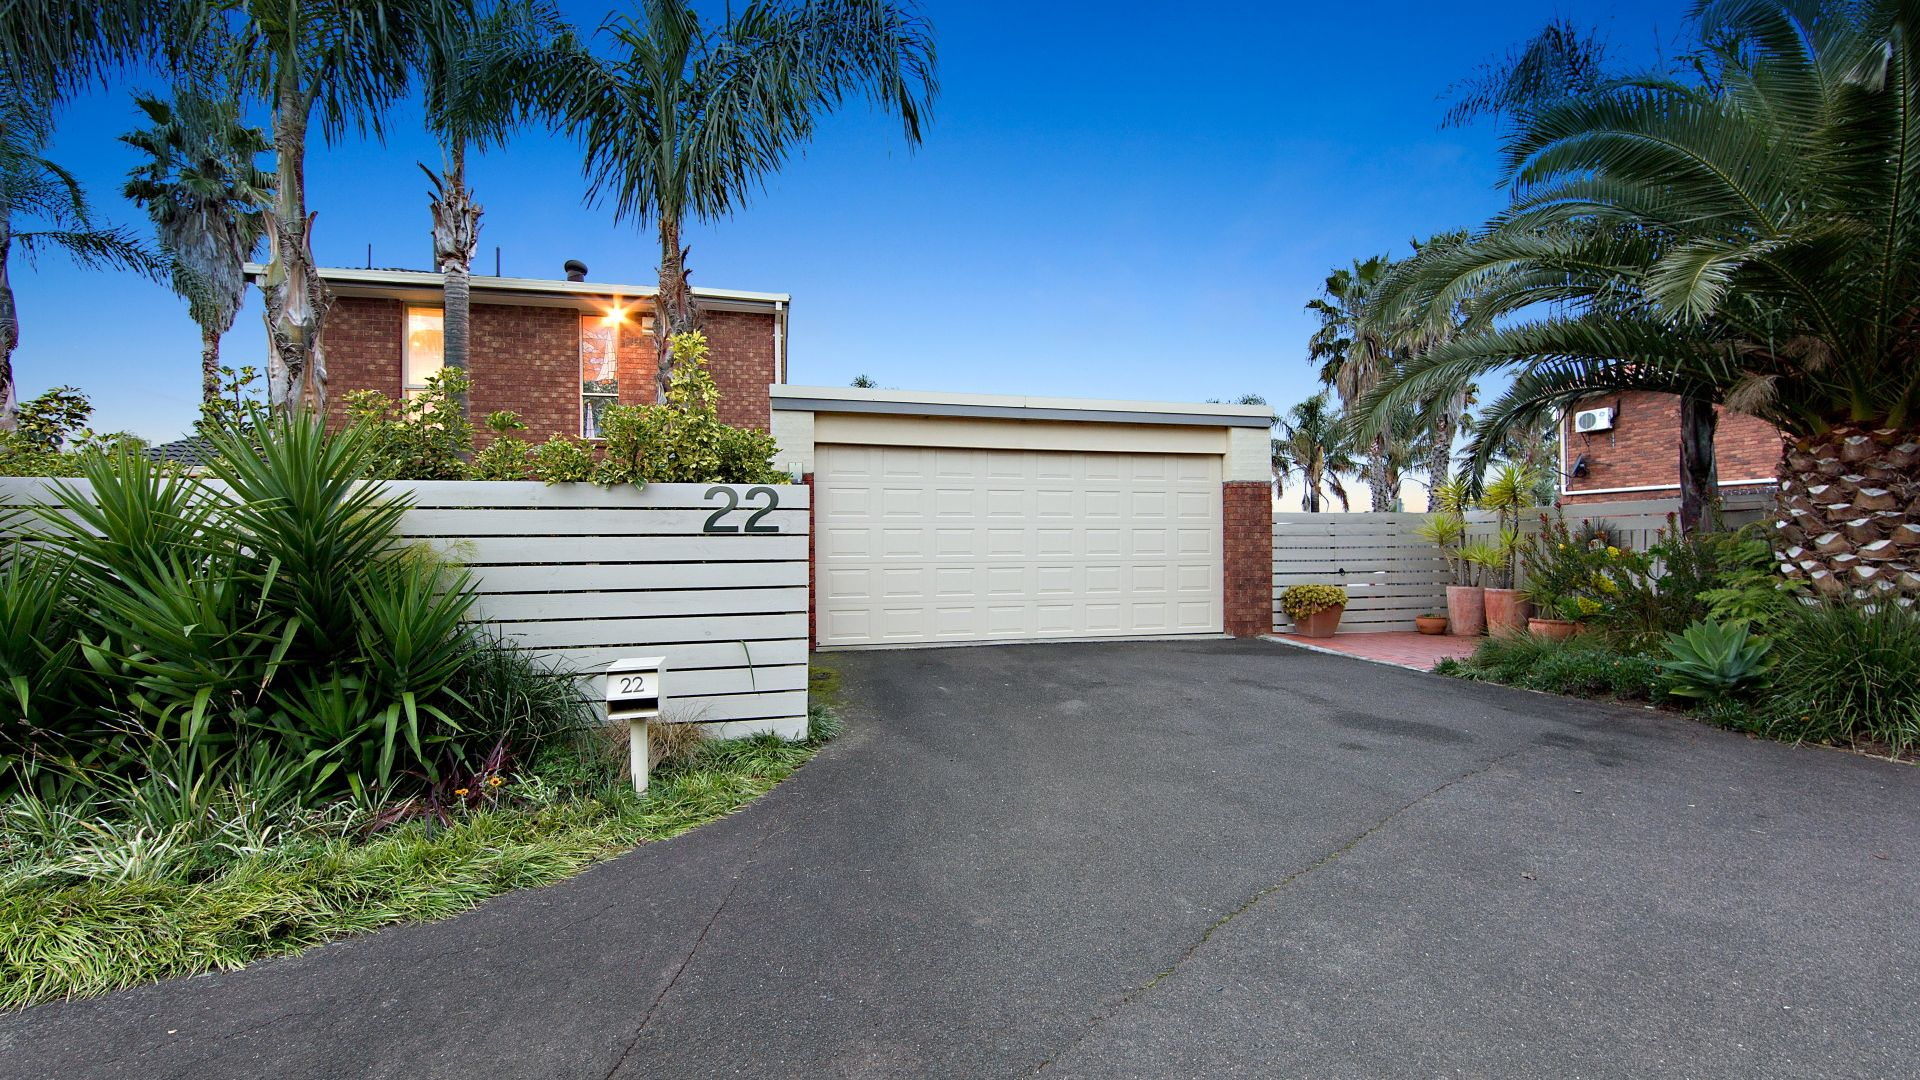 22/1 Canberra Street, Patterson Lakes VIC 3197, Image 1